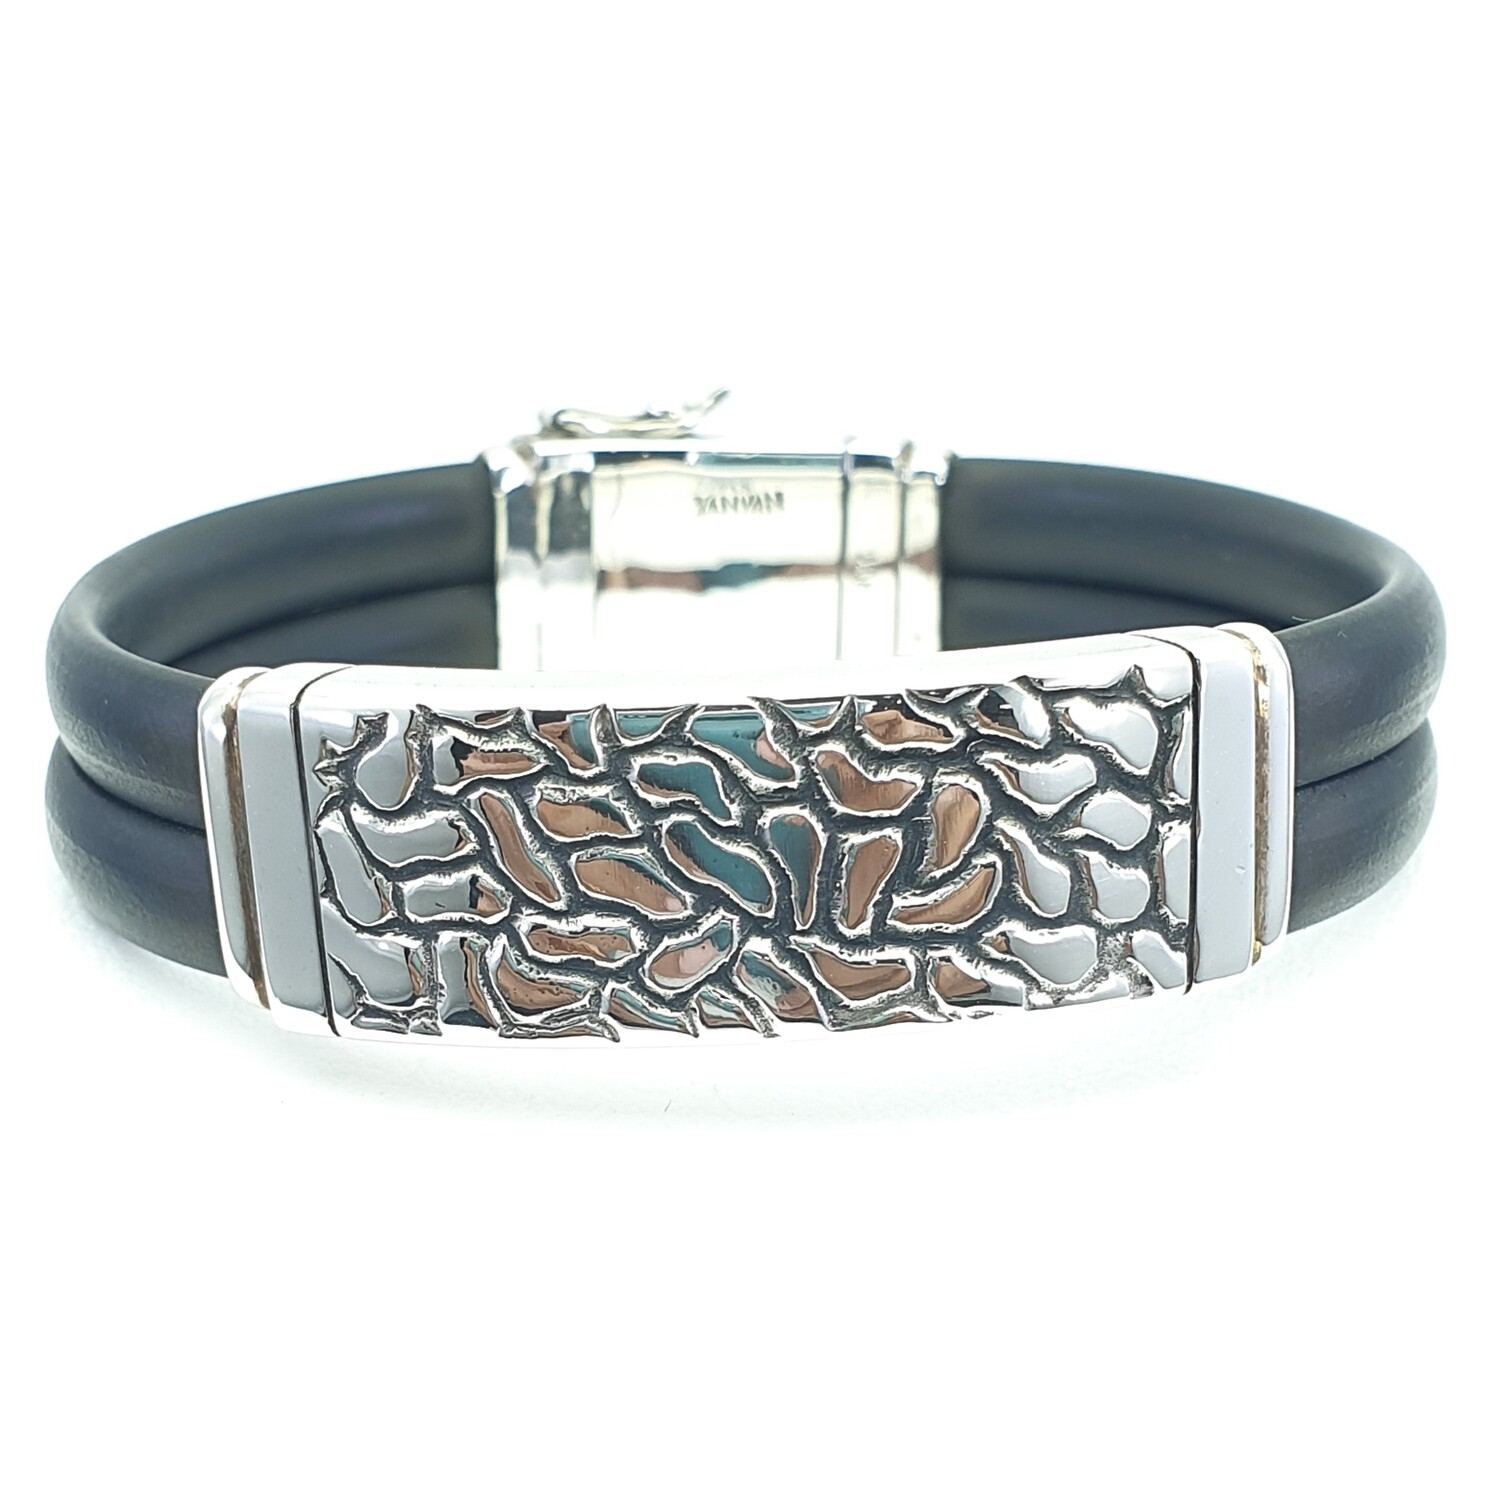 Wide Silver and Neoprene Bracelet